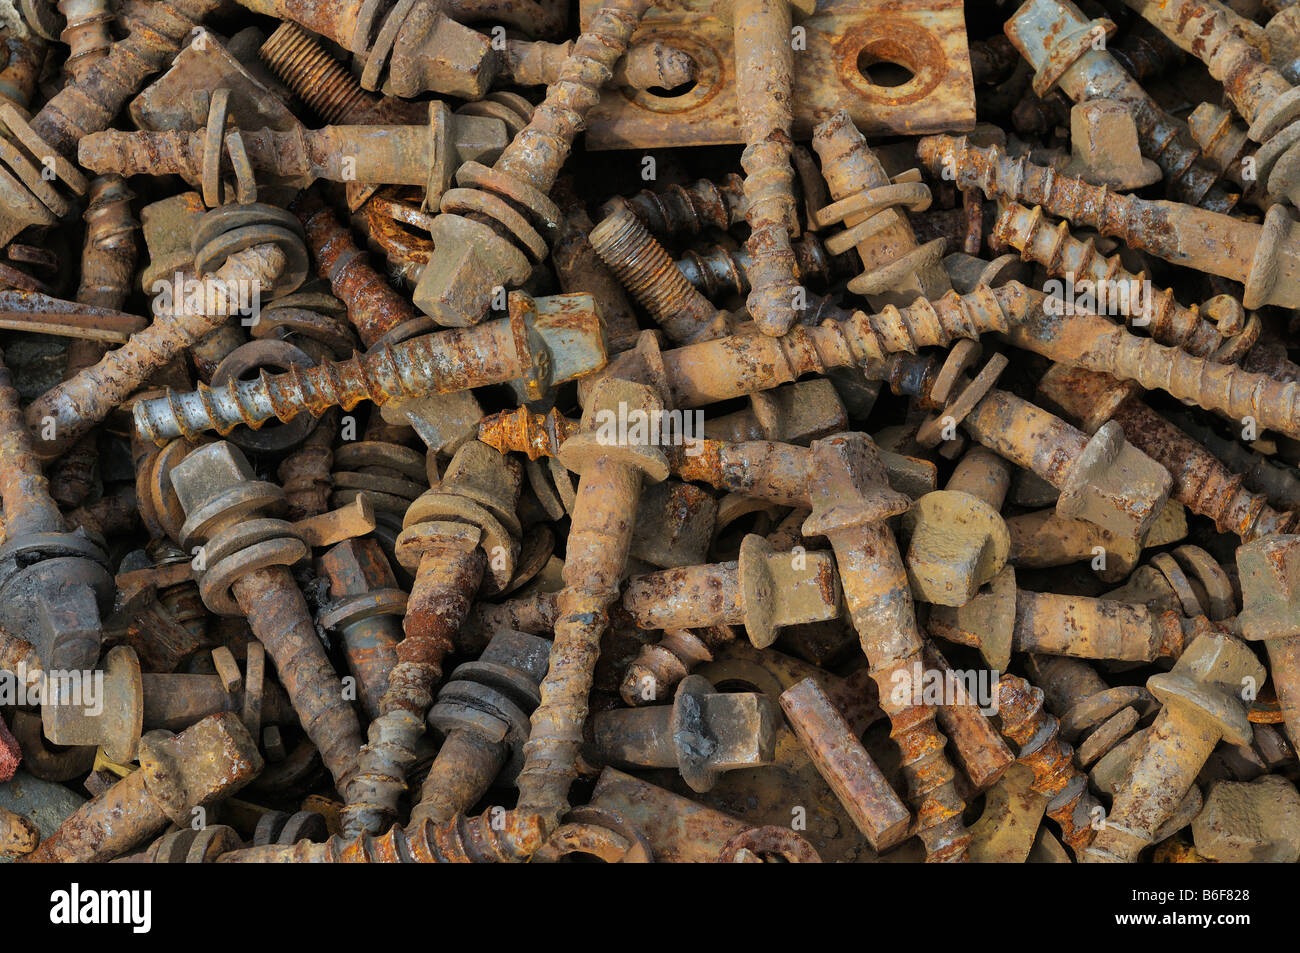 Accumulation of old metal screws, scrap metal collection, covering whole format - Stock Image